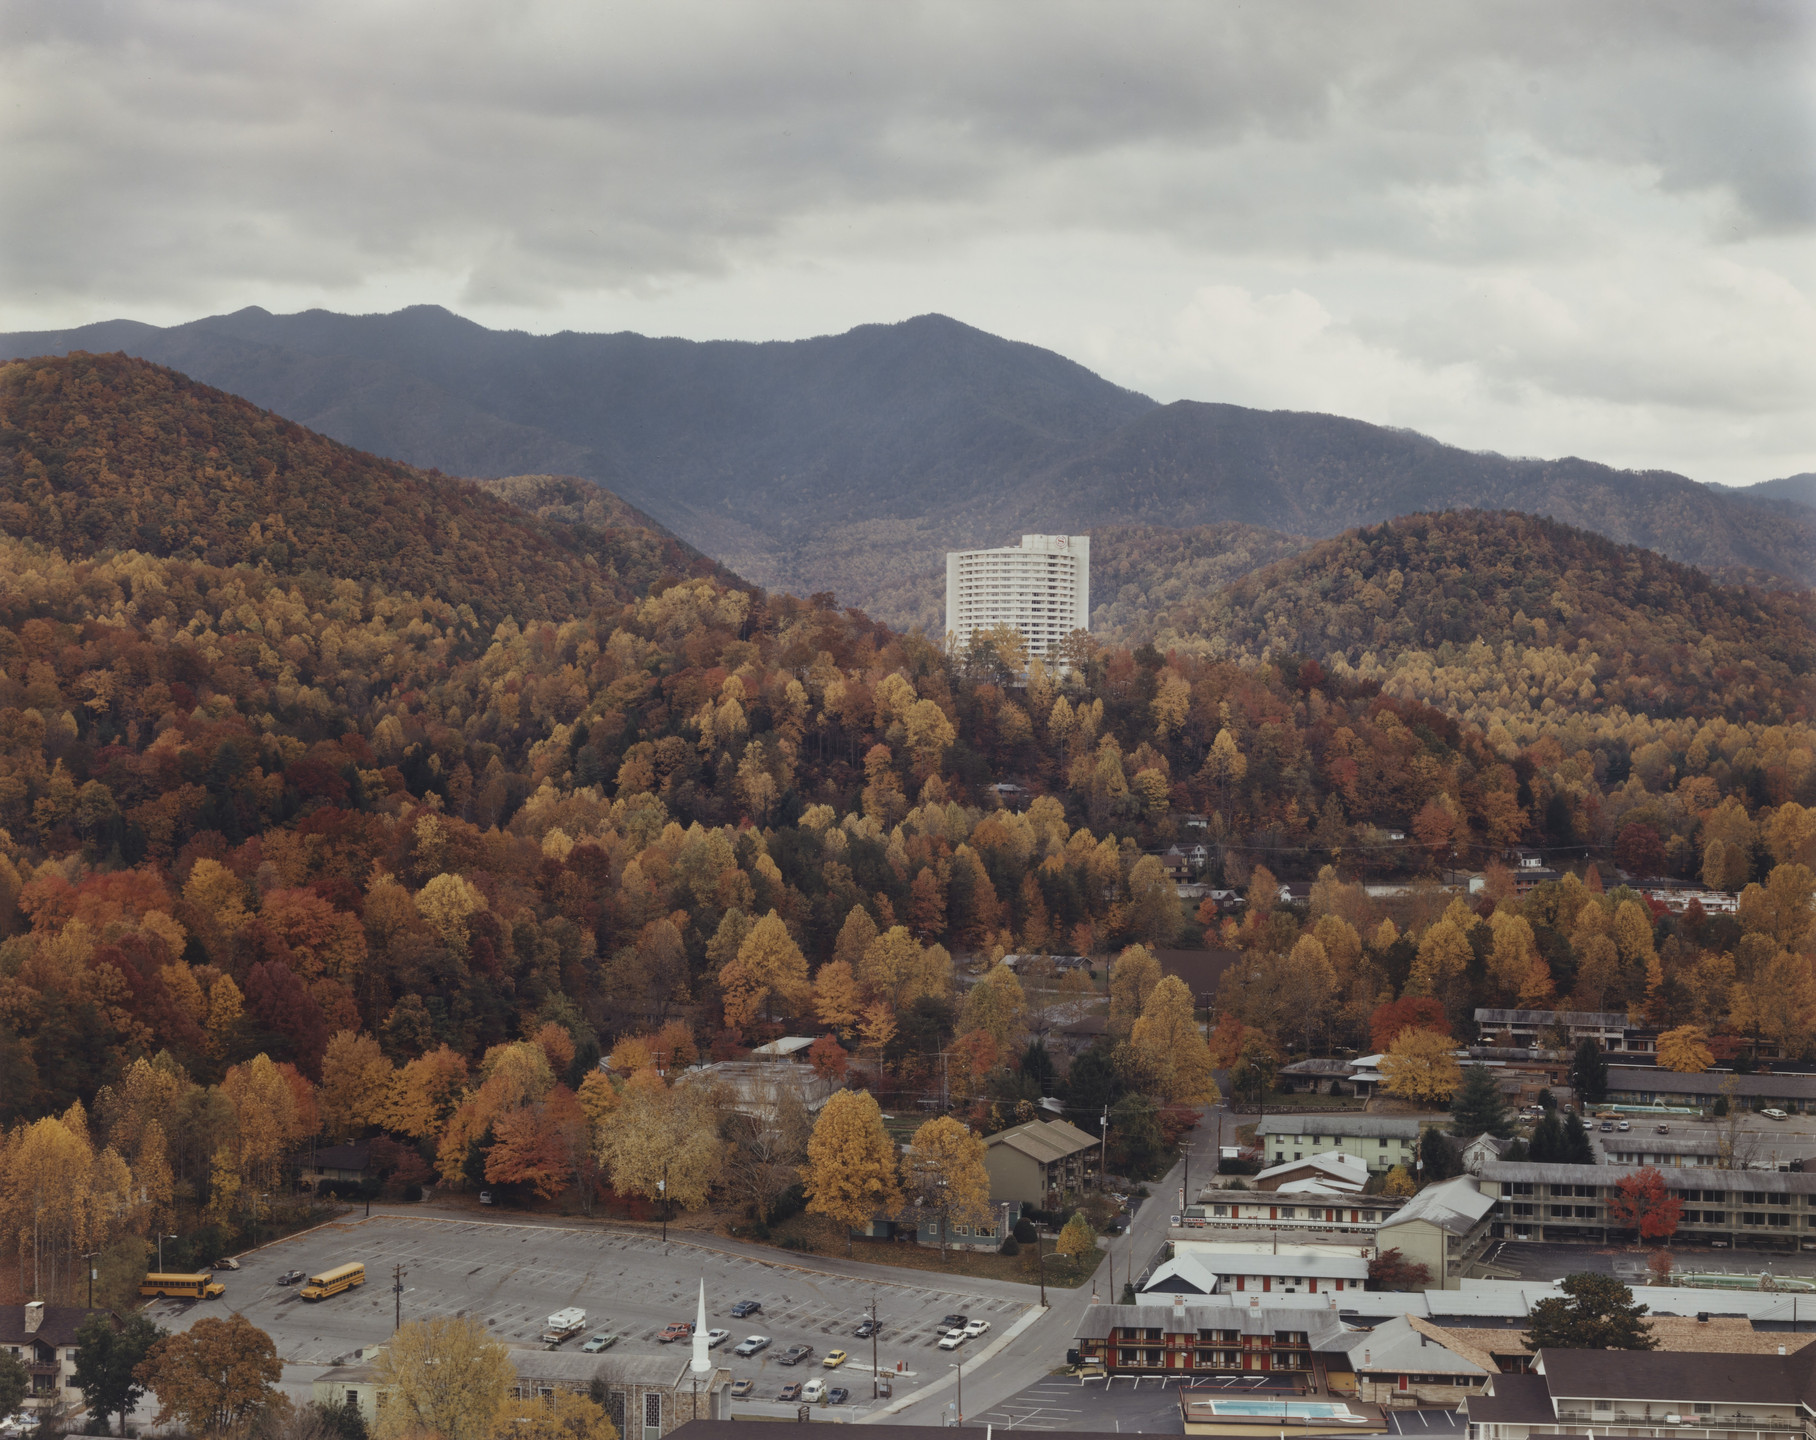 Joel Sternfeld. Gatlinburg, Tennessee. November 1980